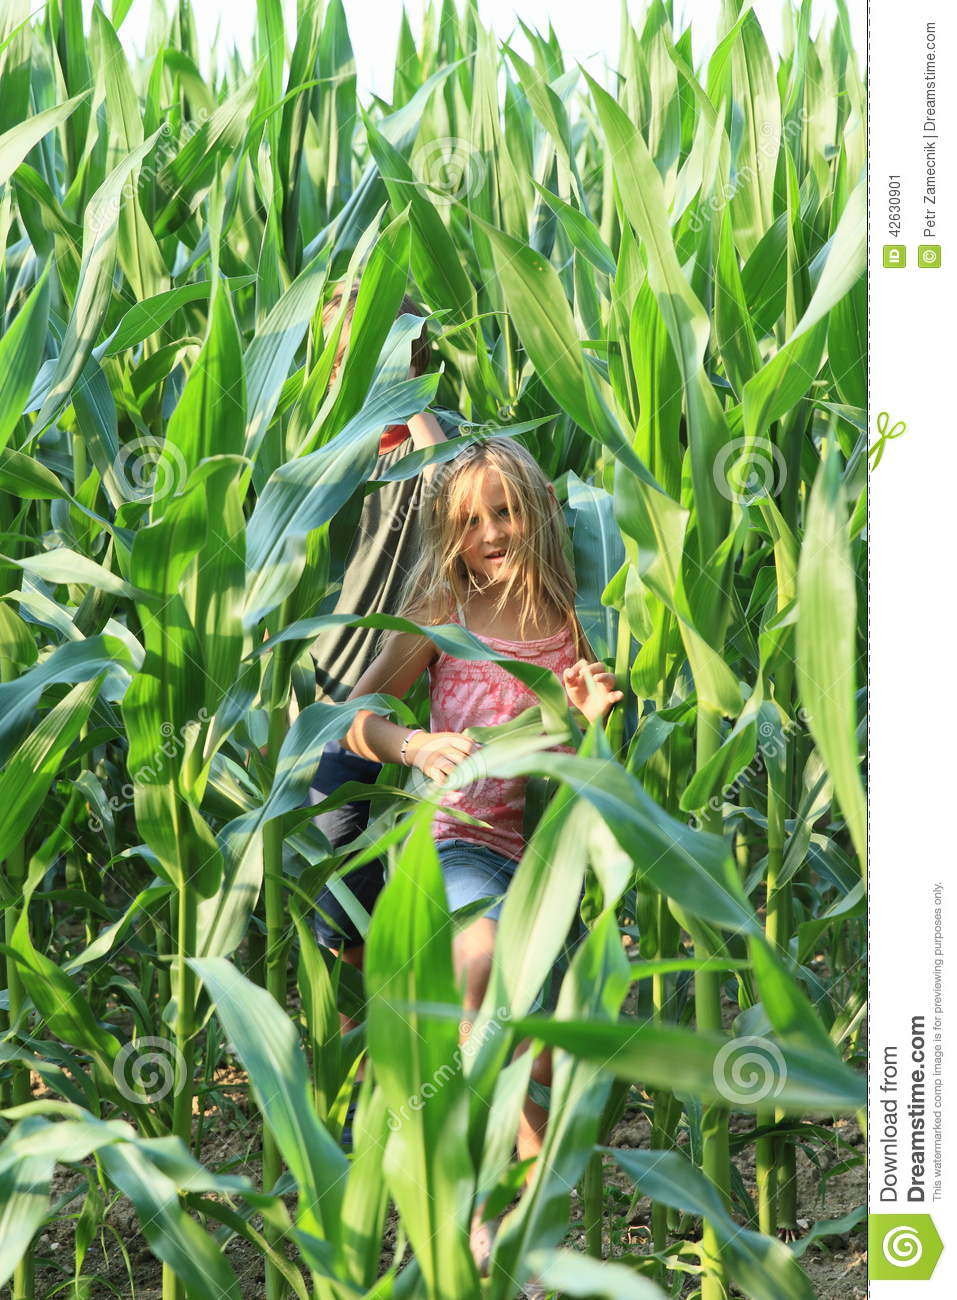 corn girls Professional quality corn field images and pictures at very affordable prices with over 50 million stunning photos to choose from we've got what you need.